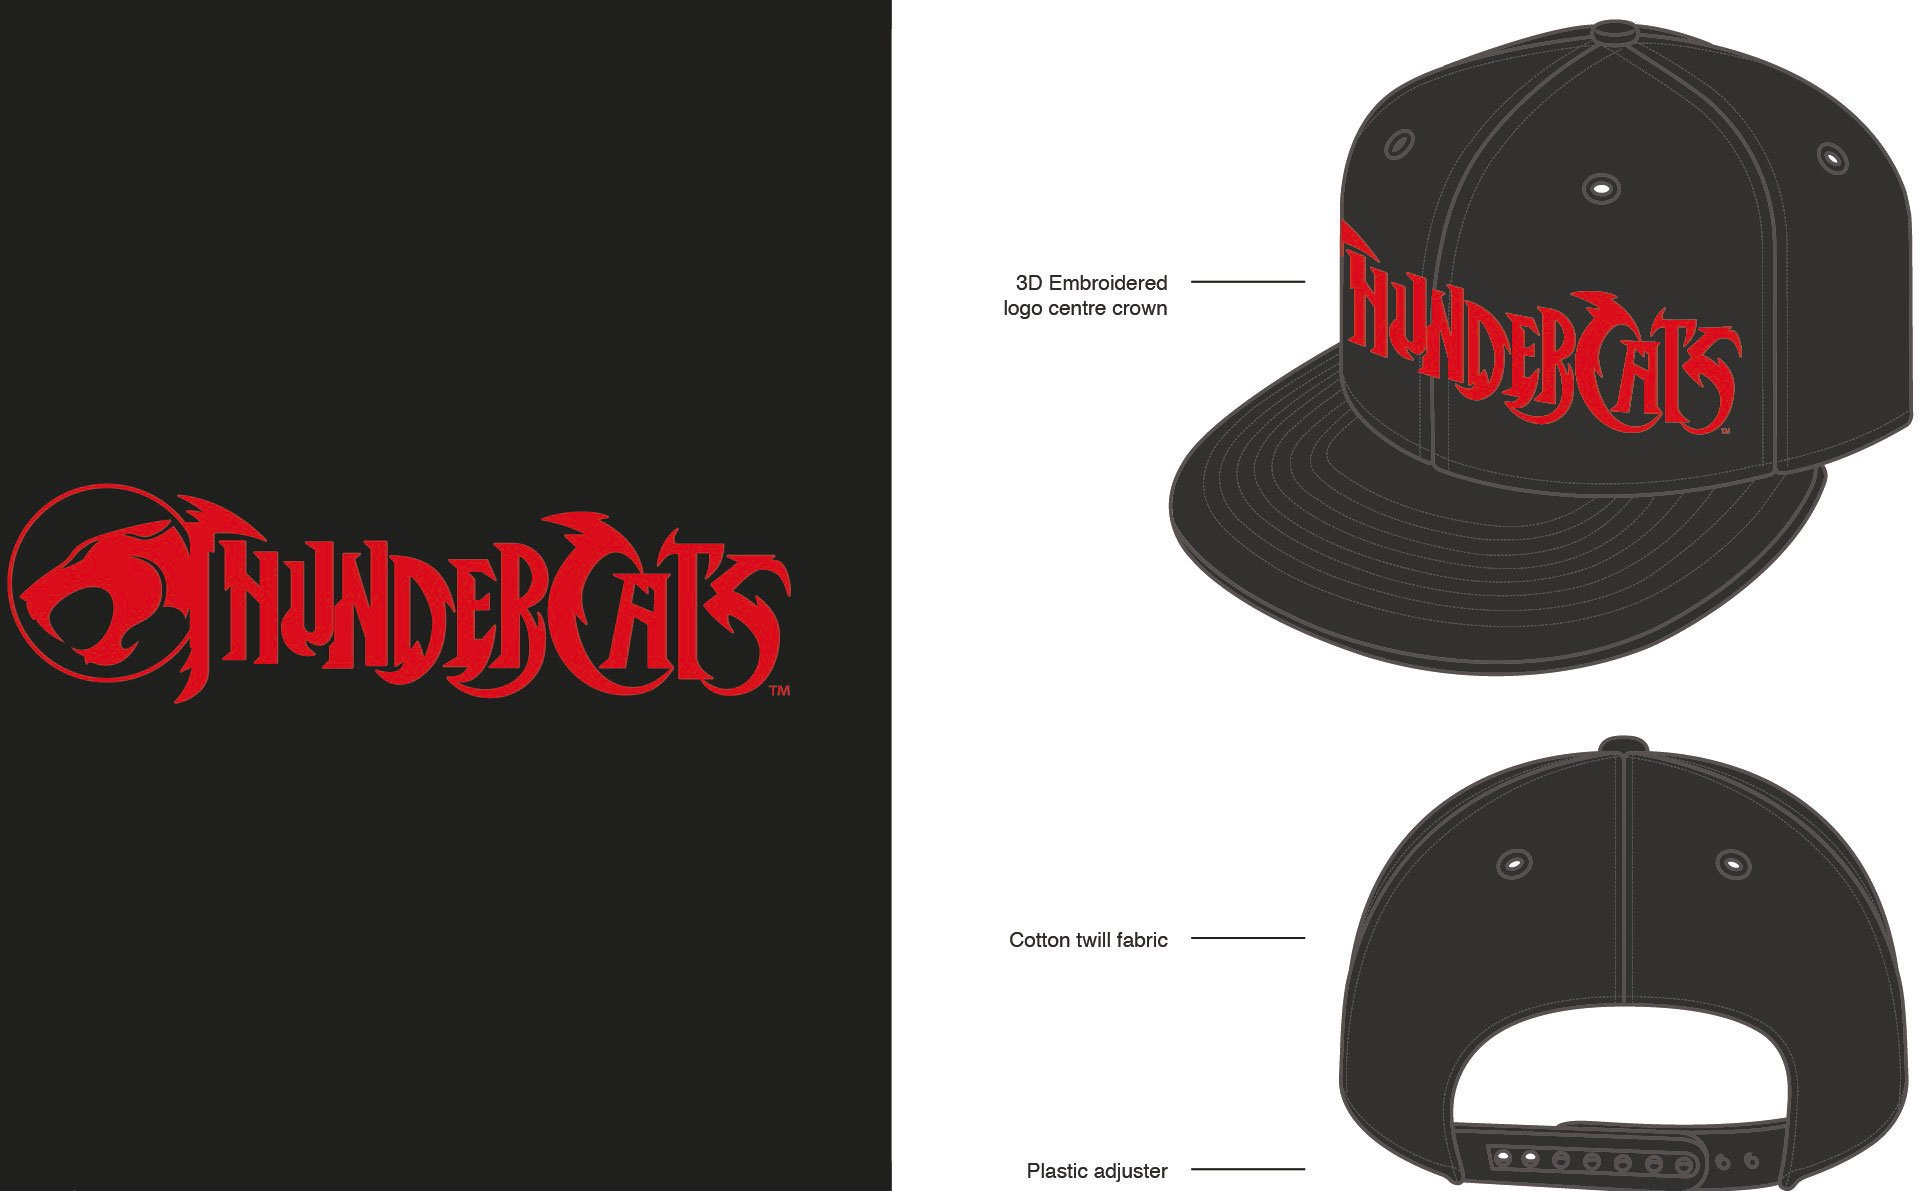 Thundercats Snap Back Cap Logo